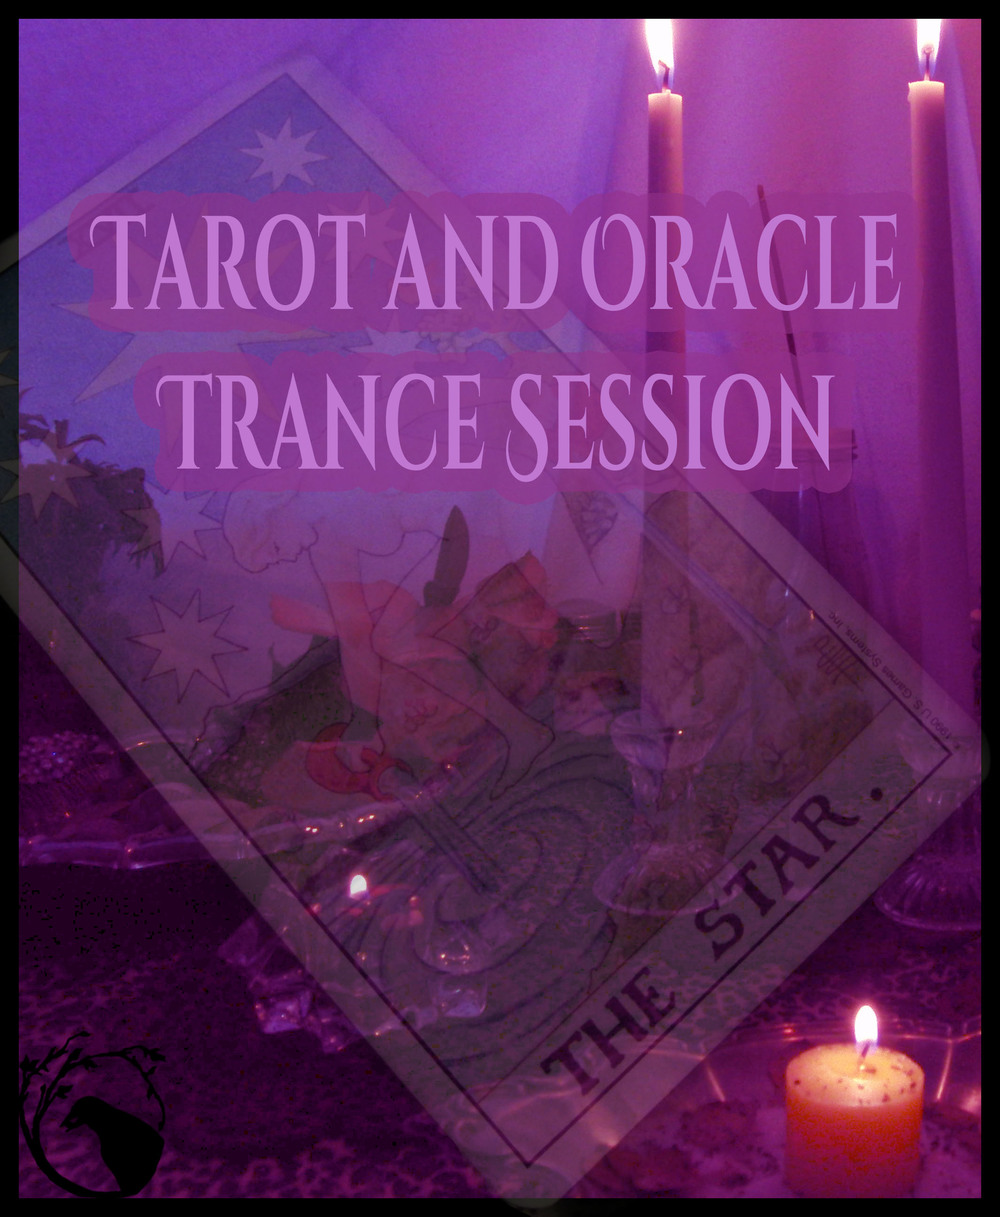 tarot and oracle trance session purple violet black flame fire magic witchcraft spells